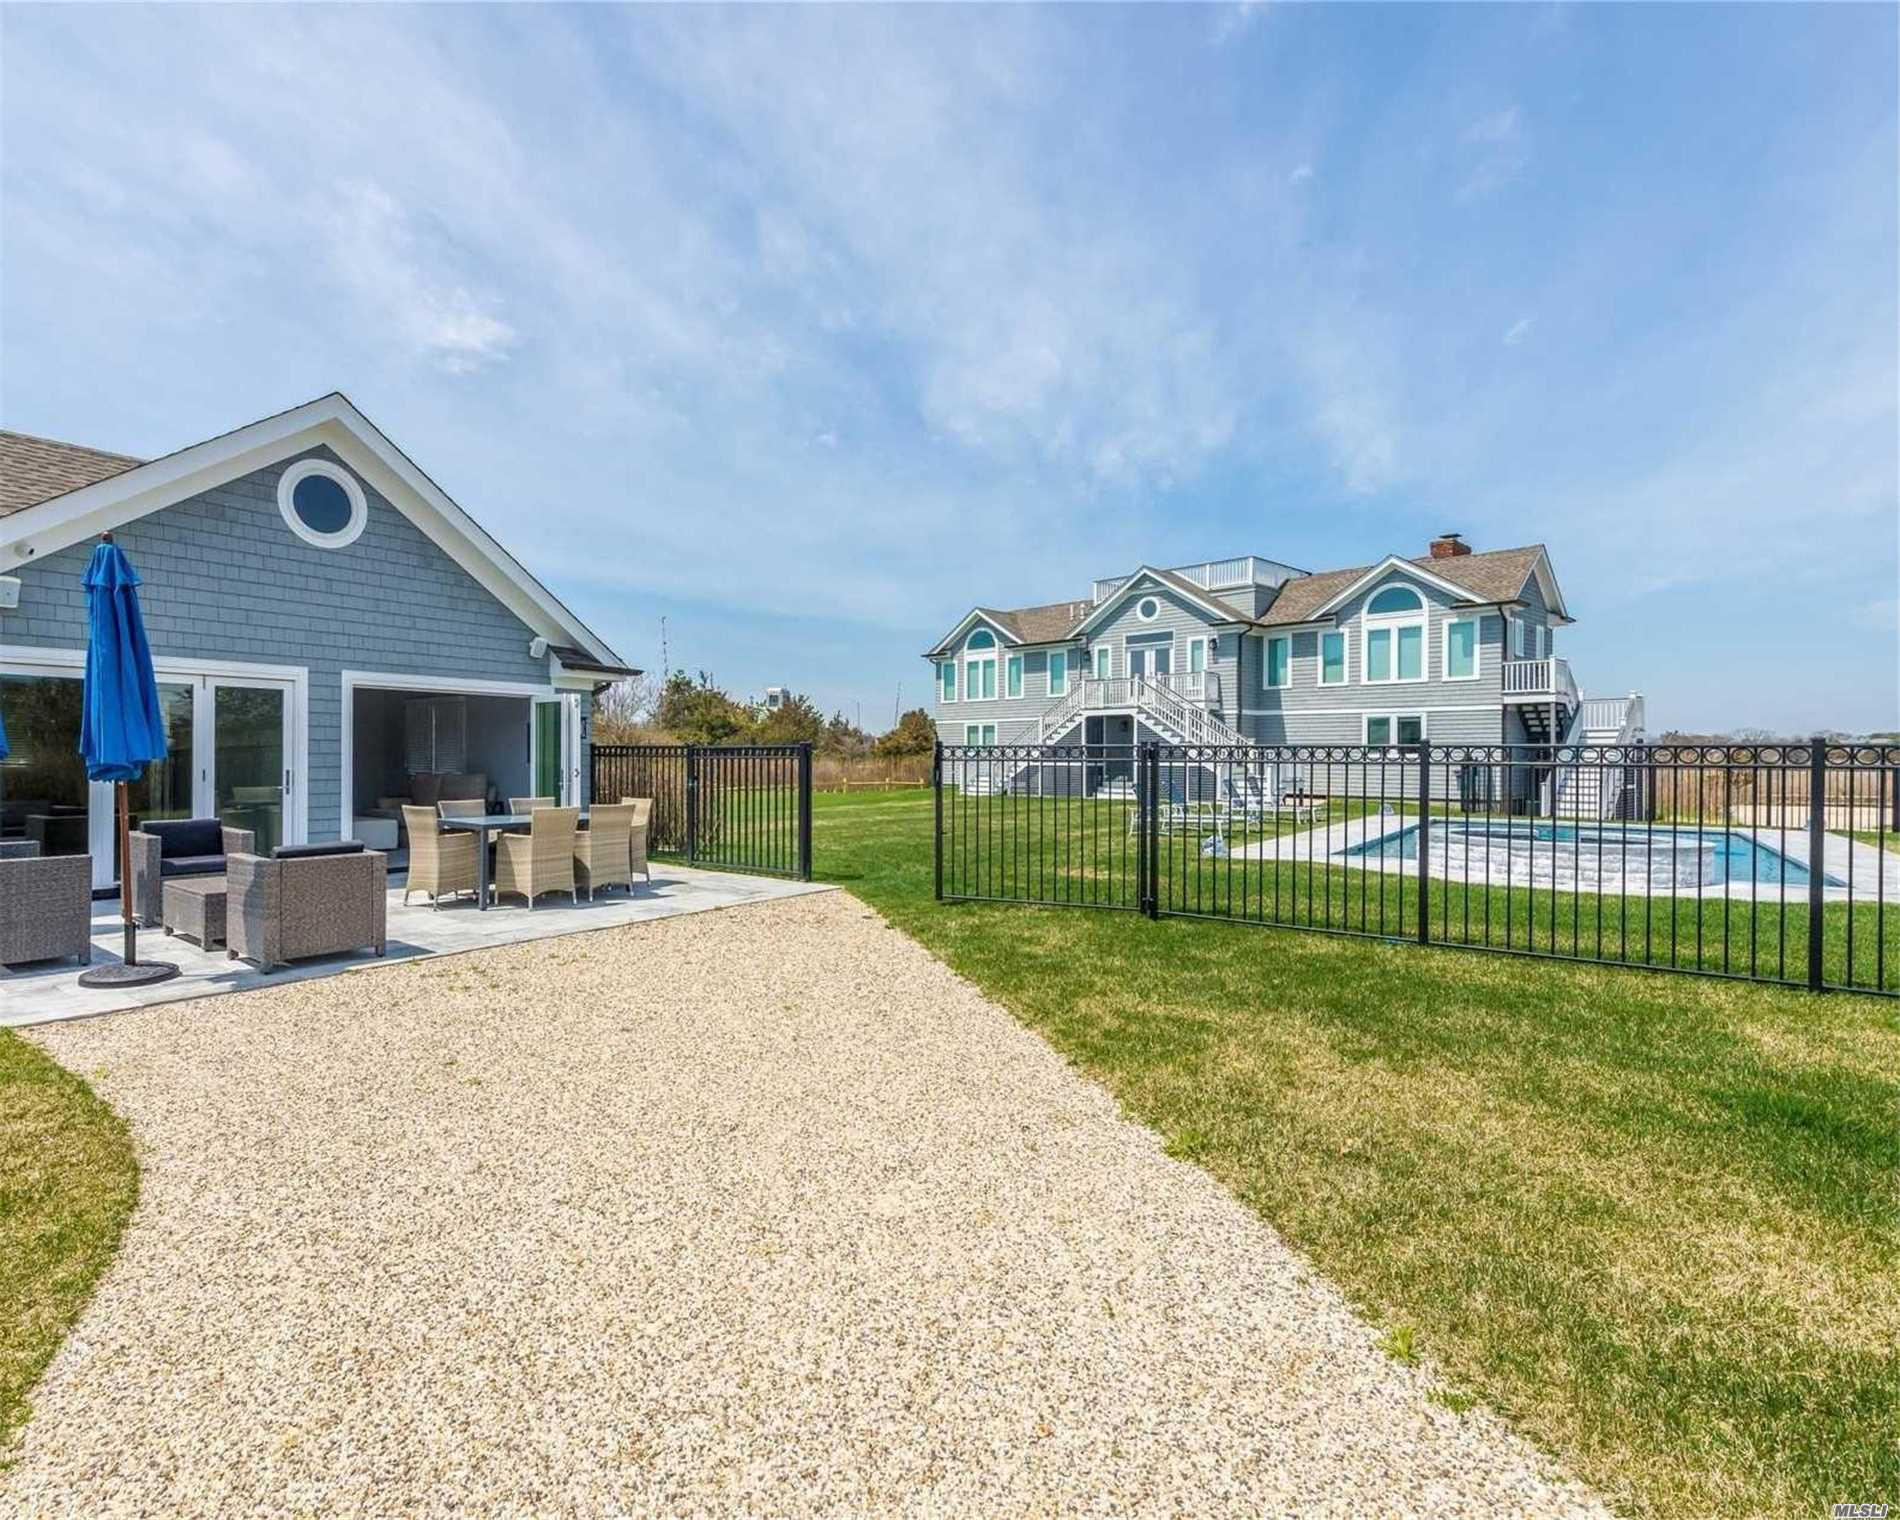 Photo of home for sale at 115 Dune Rd, Quogue NY